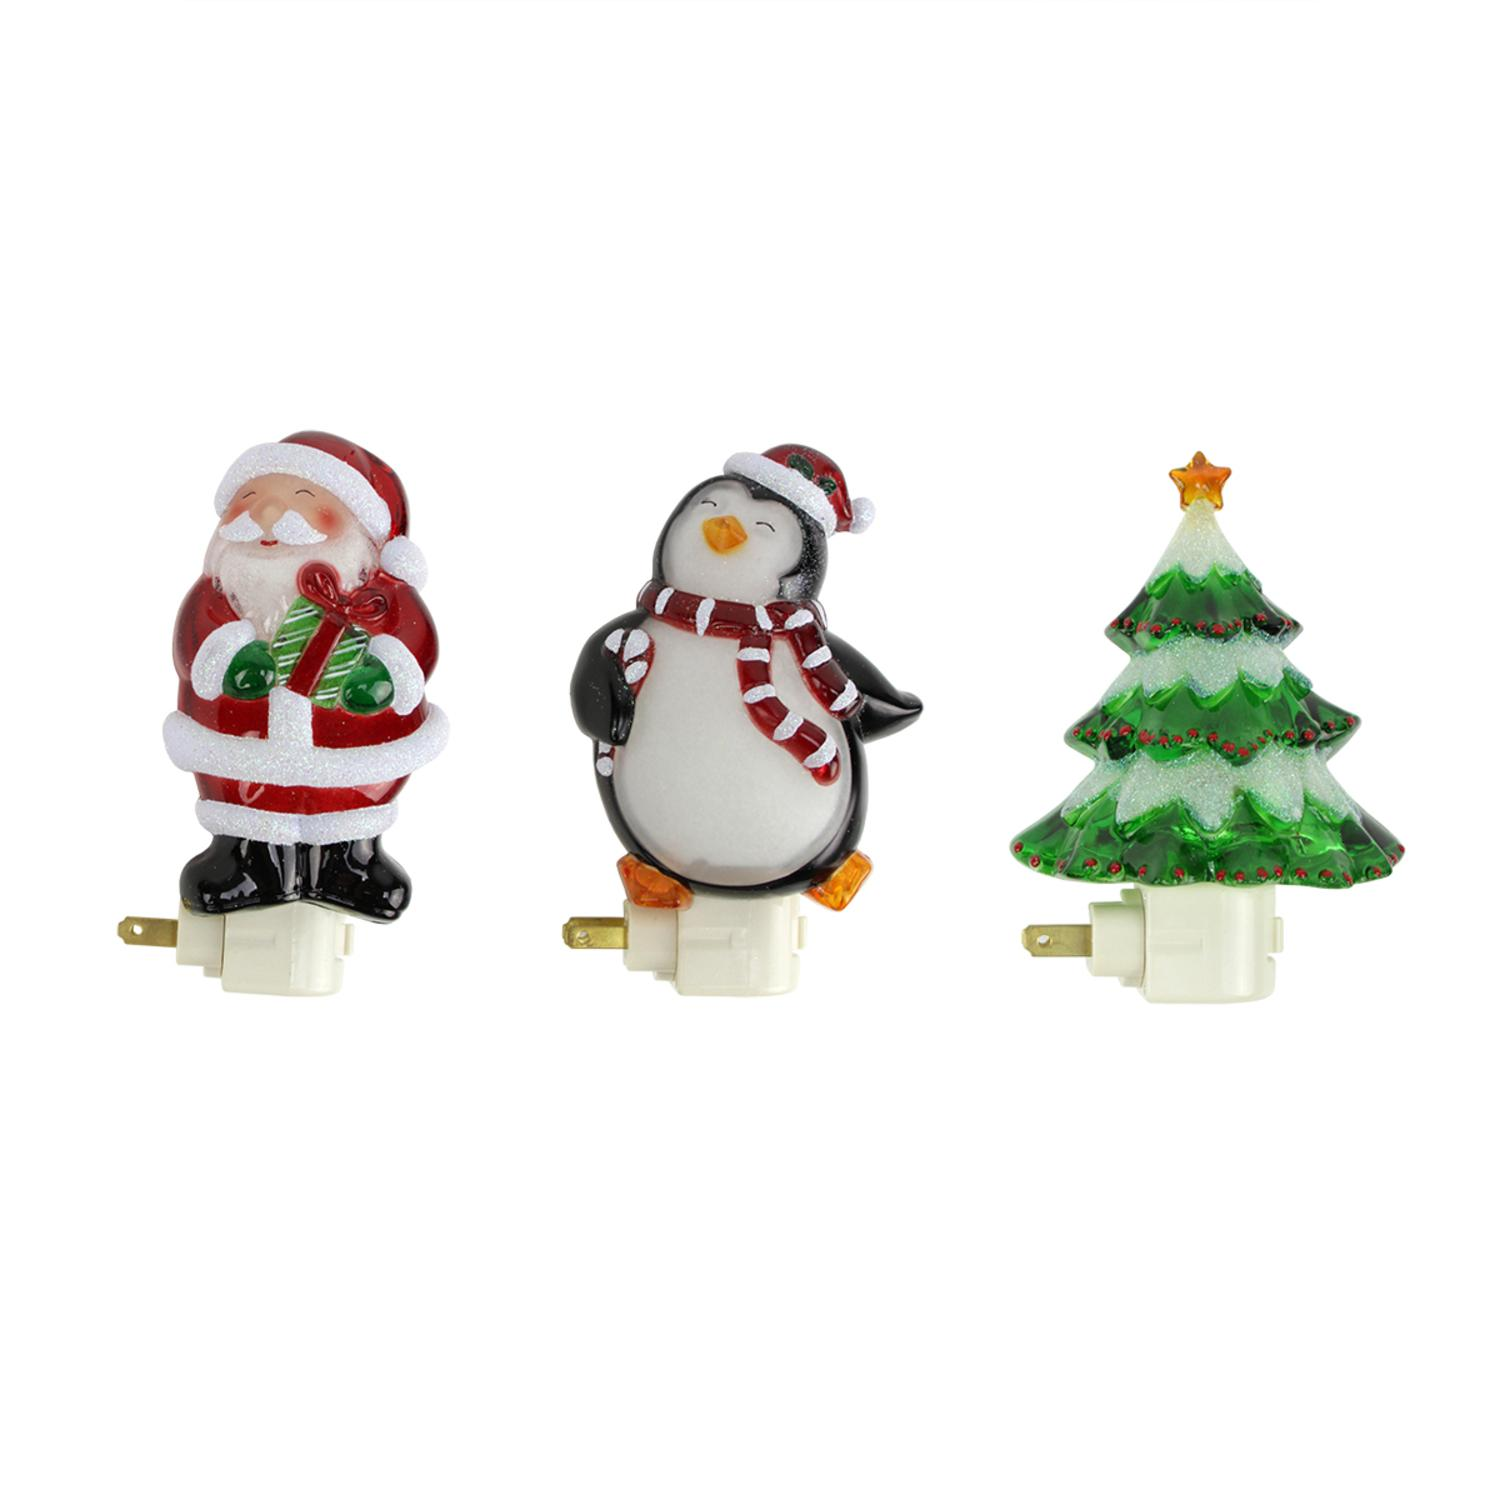 ''Set of 3 Glittered Santa Claus  Penguin and Christmas Tree HOLIDAY Night Lights 6.25''''''